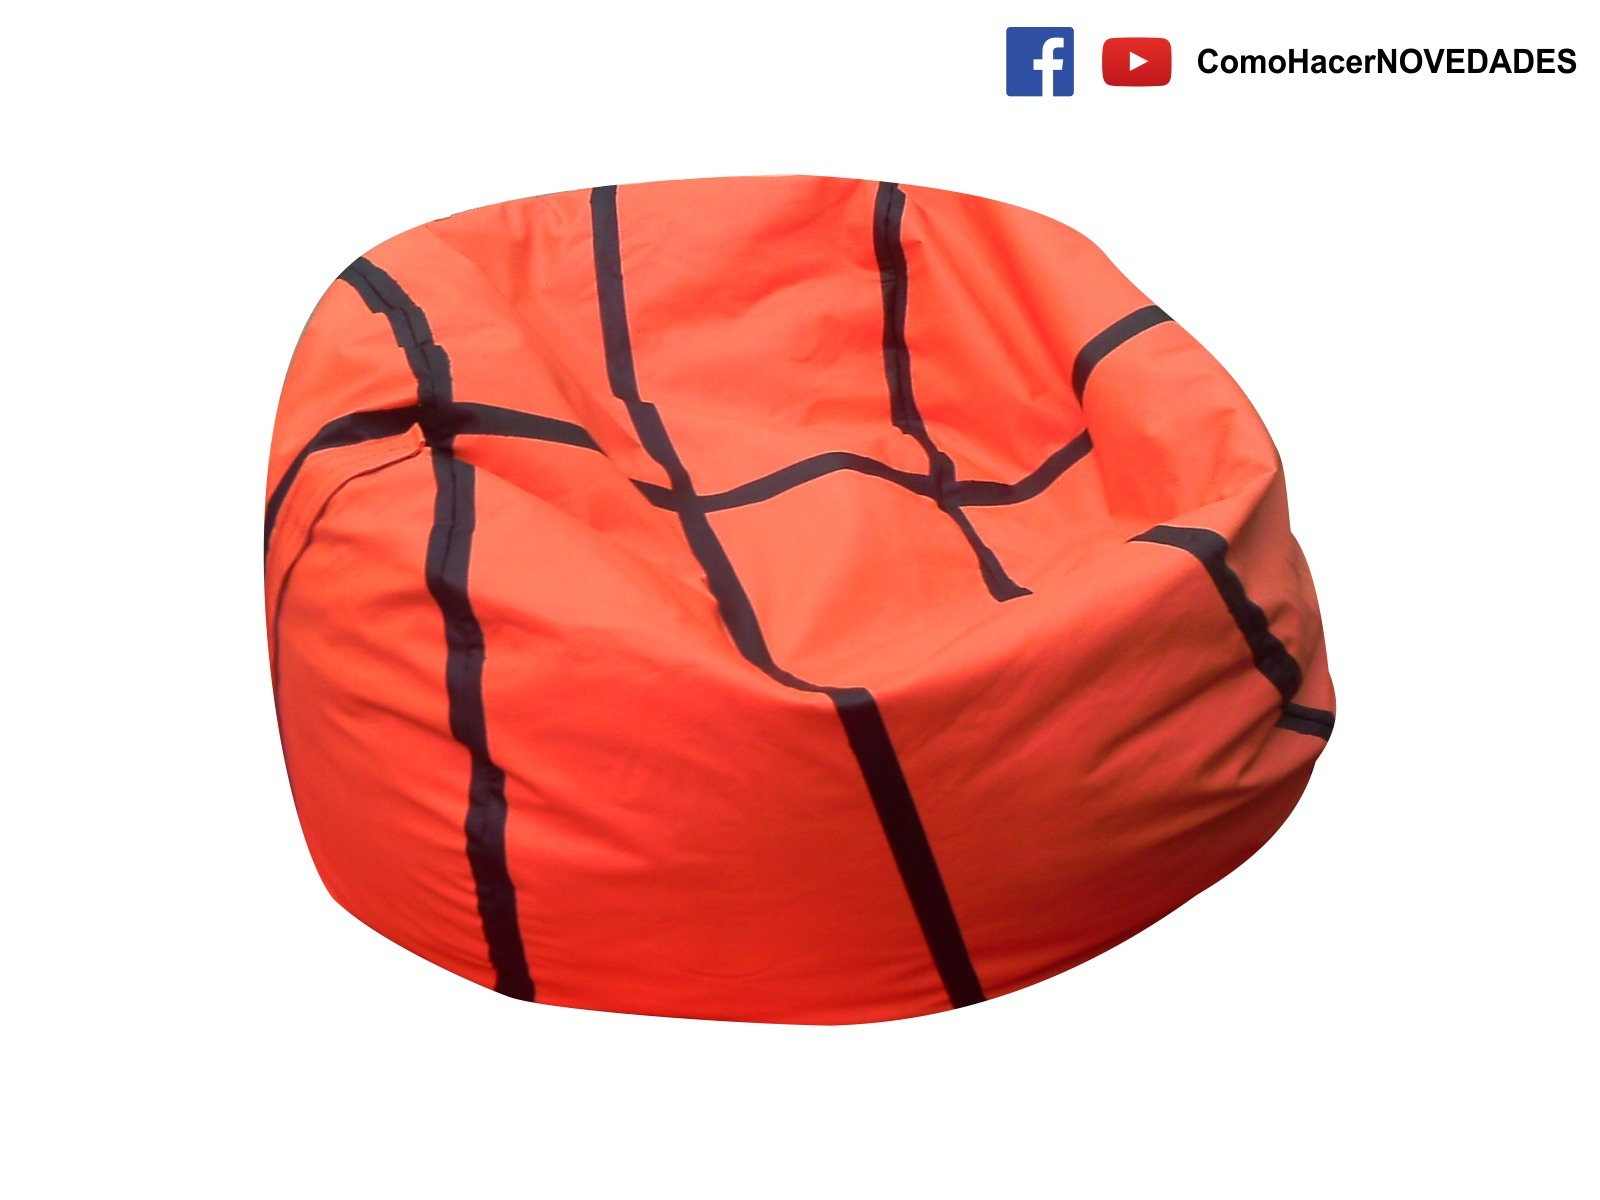 Basketball bean bag chair - Sil - chnovedades | ello